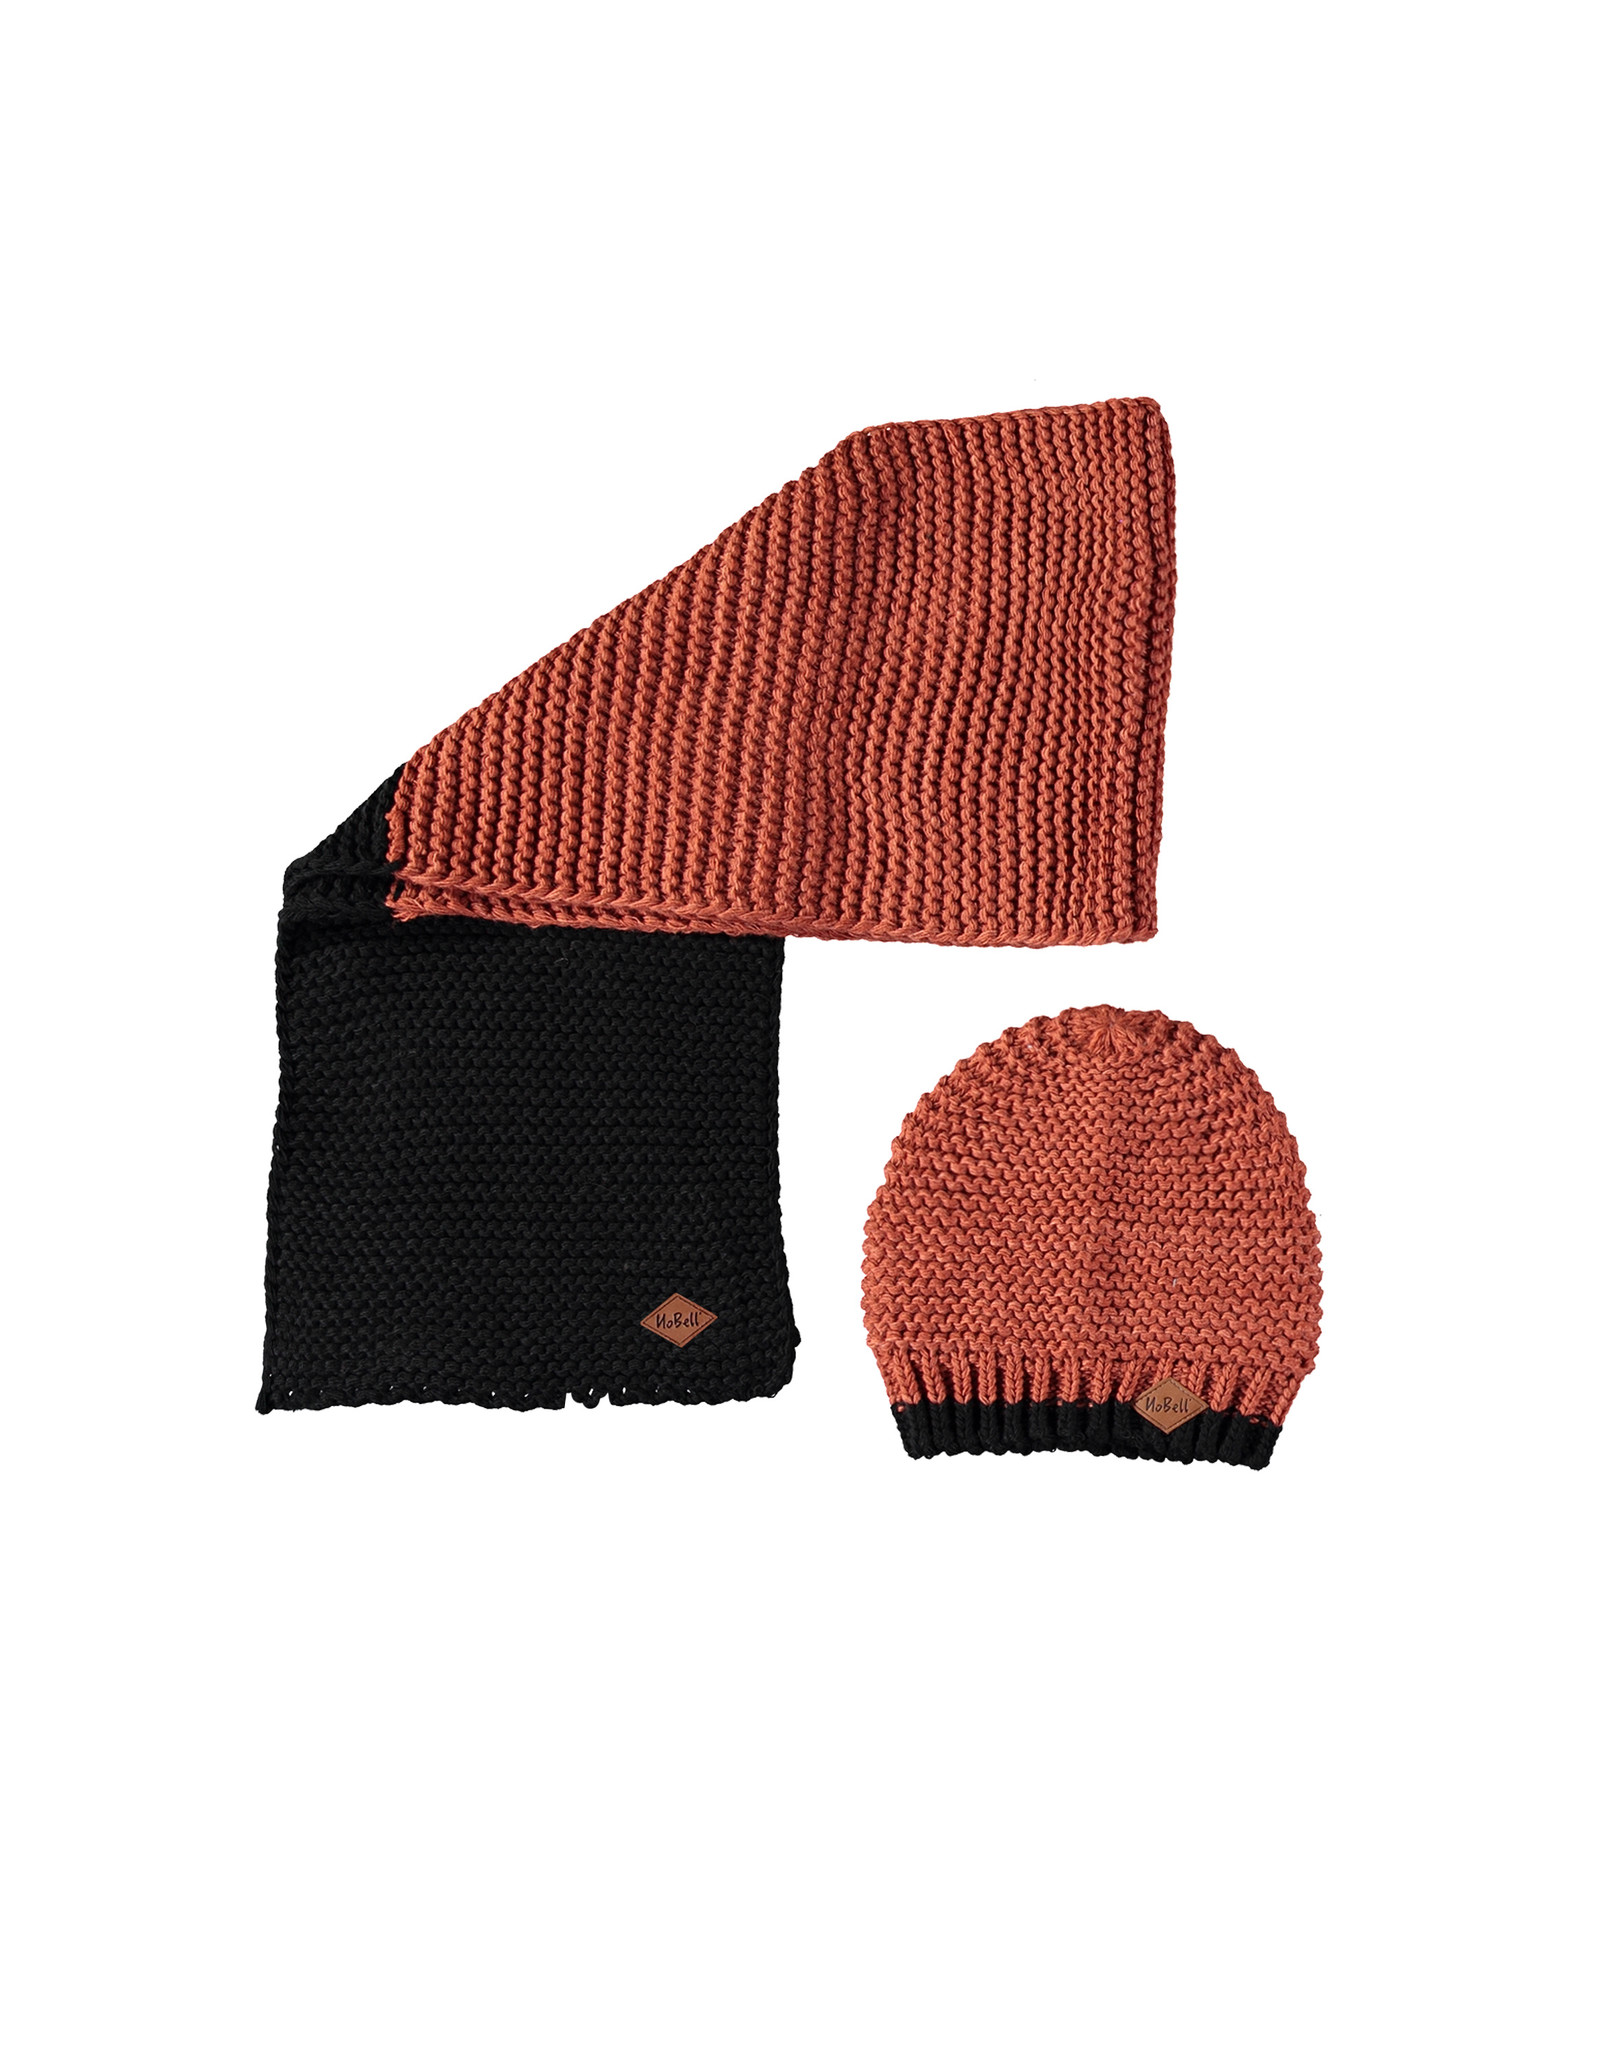 Nobell Rai knitted set: scarf and hat